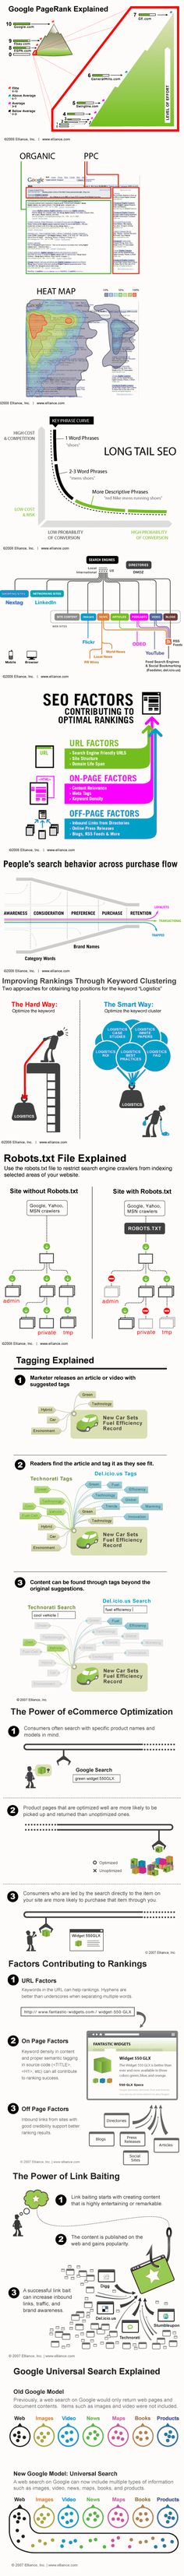 Google Pagerank Explained - Awesome infographic breaking down the many technical facets of search engine optimization in easy to comprehend graphics.